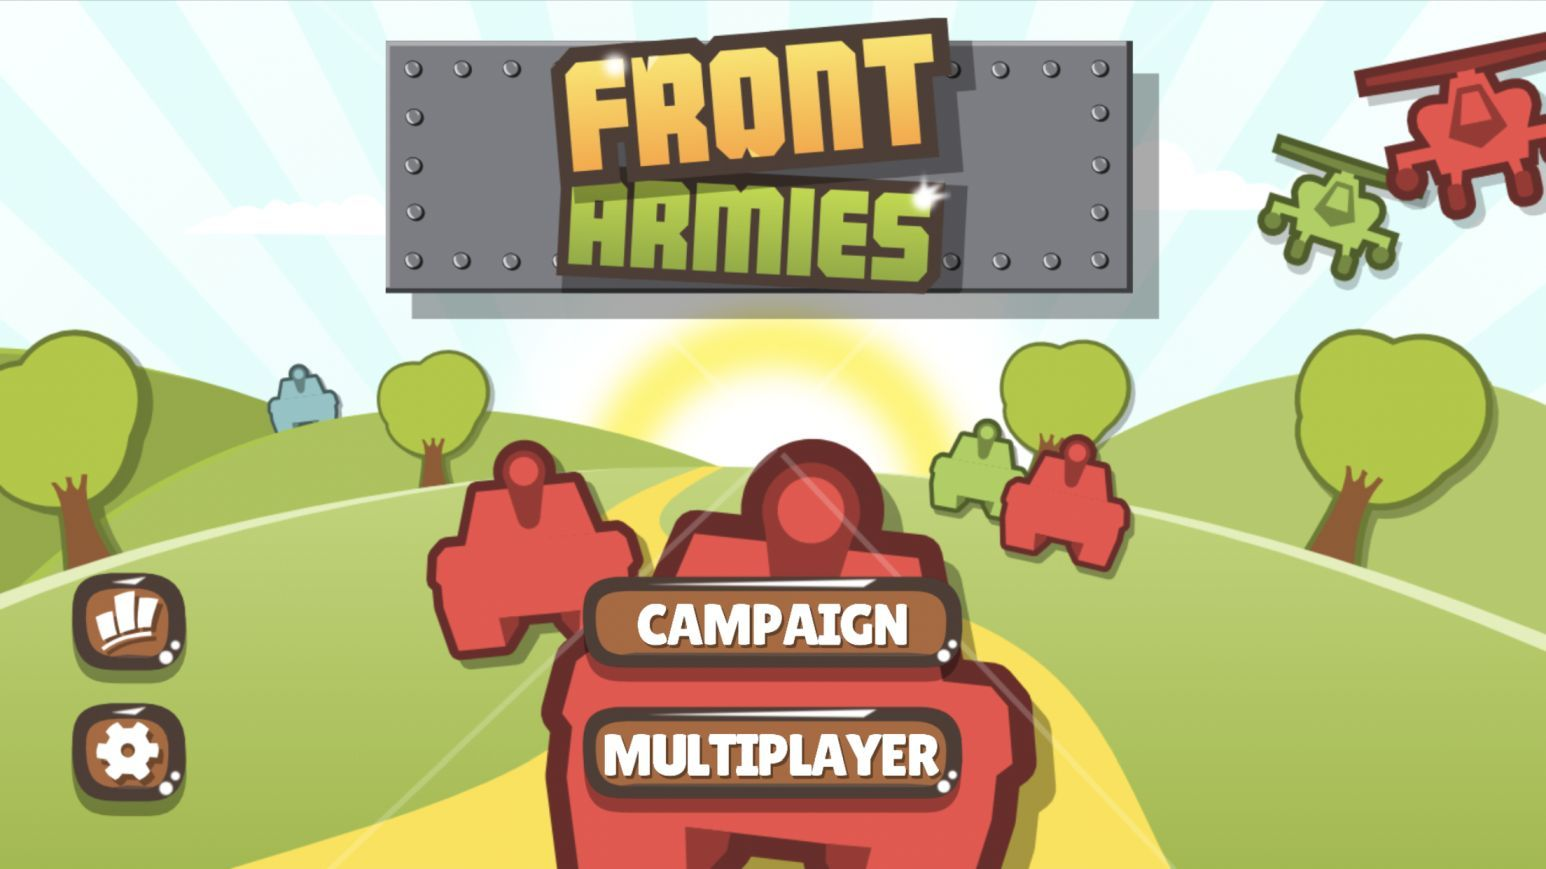 Front Armies [RTS] (copie d'écran 1 sur Android)